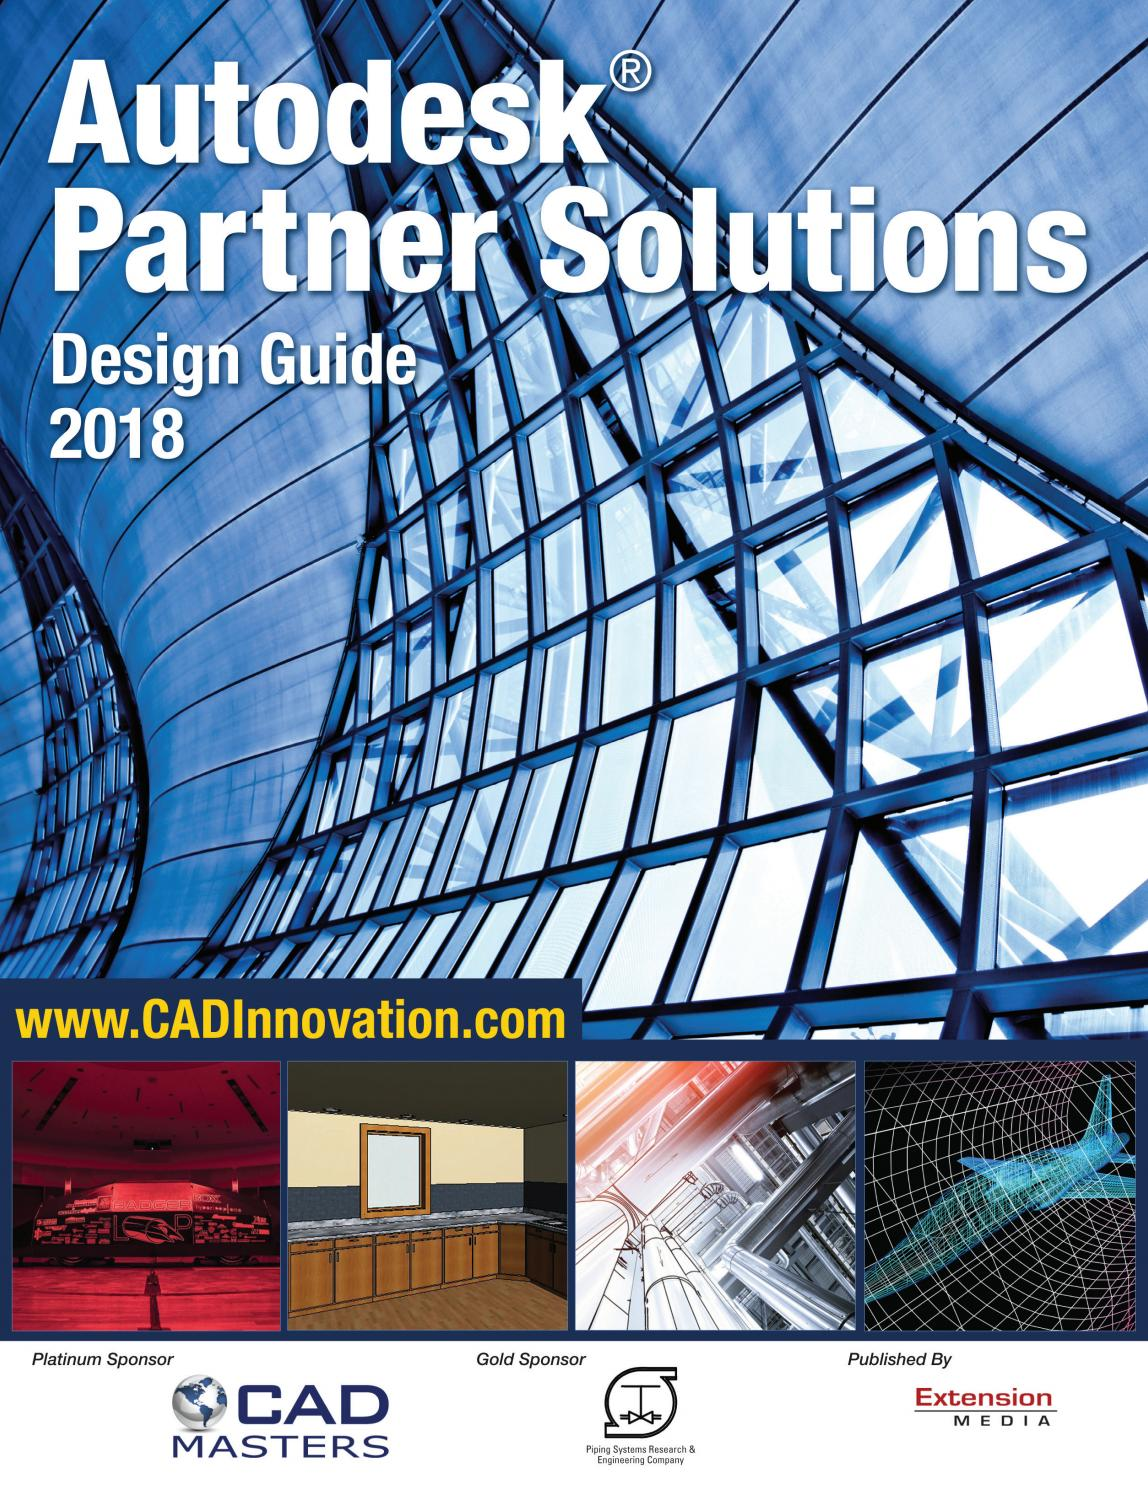 Autodesk® Partner Solutions Design Guide, 2018 by pinoycad+